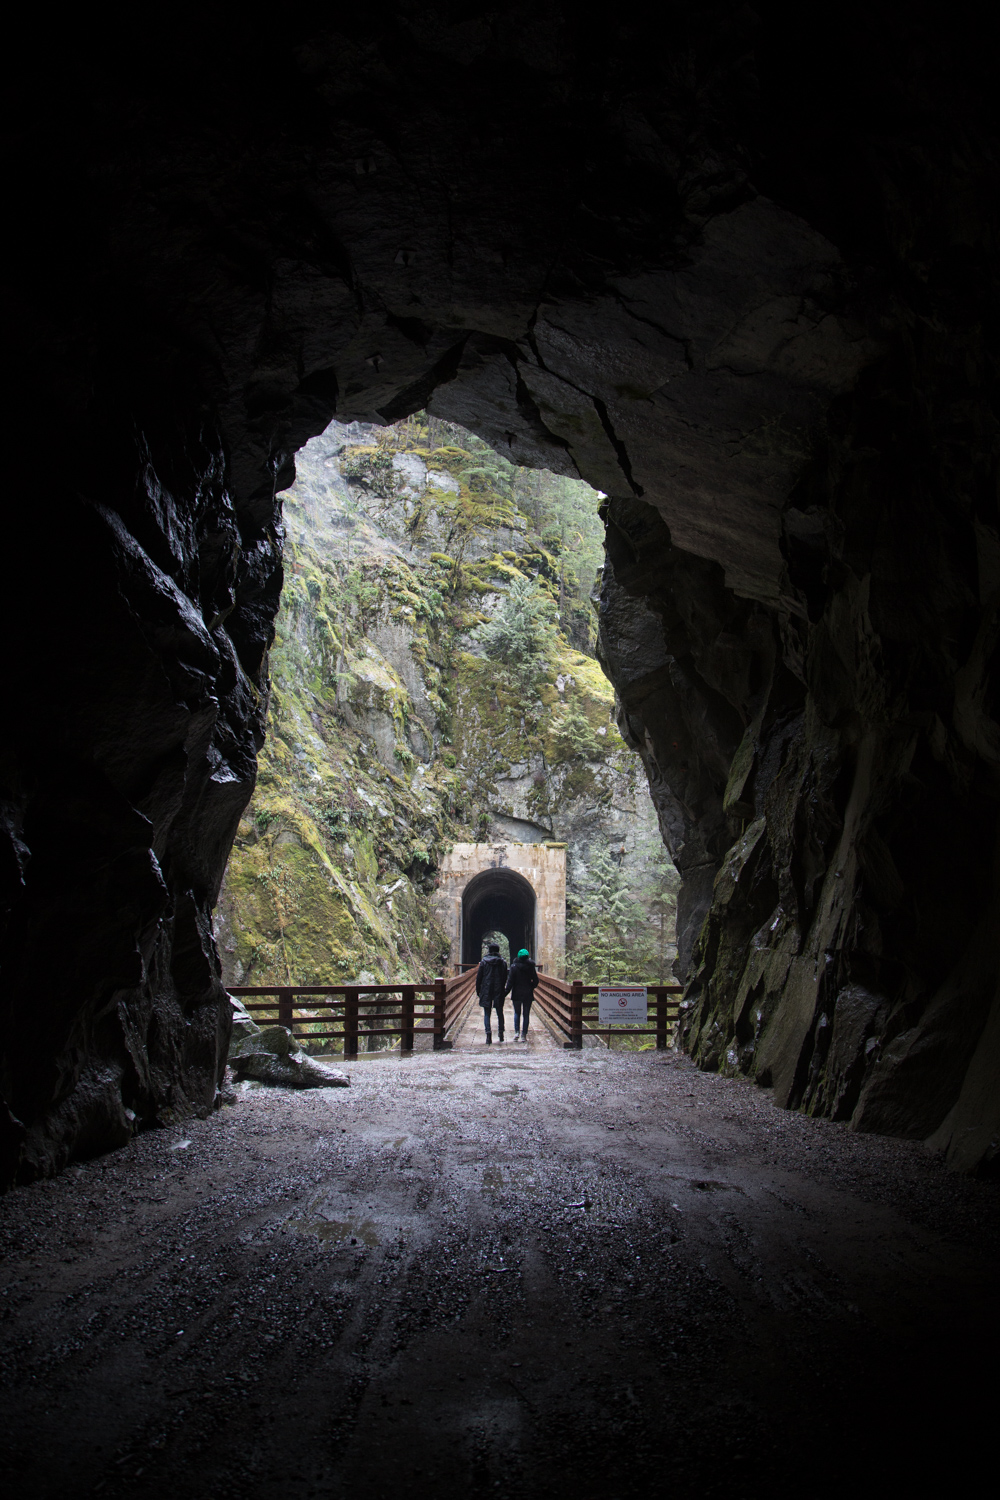 A Rainy Day at Othello Tunnels in Hope, British Columbia